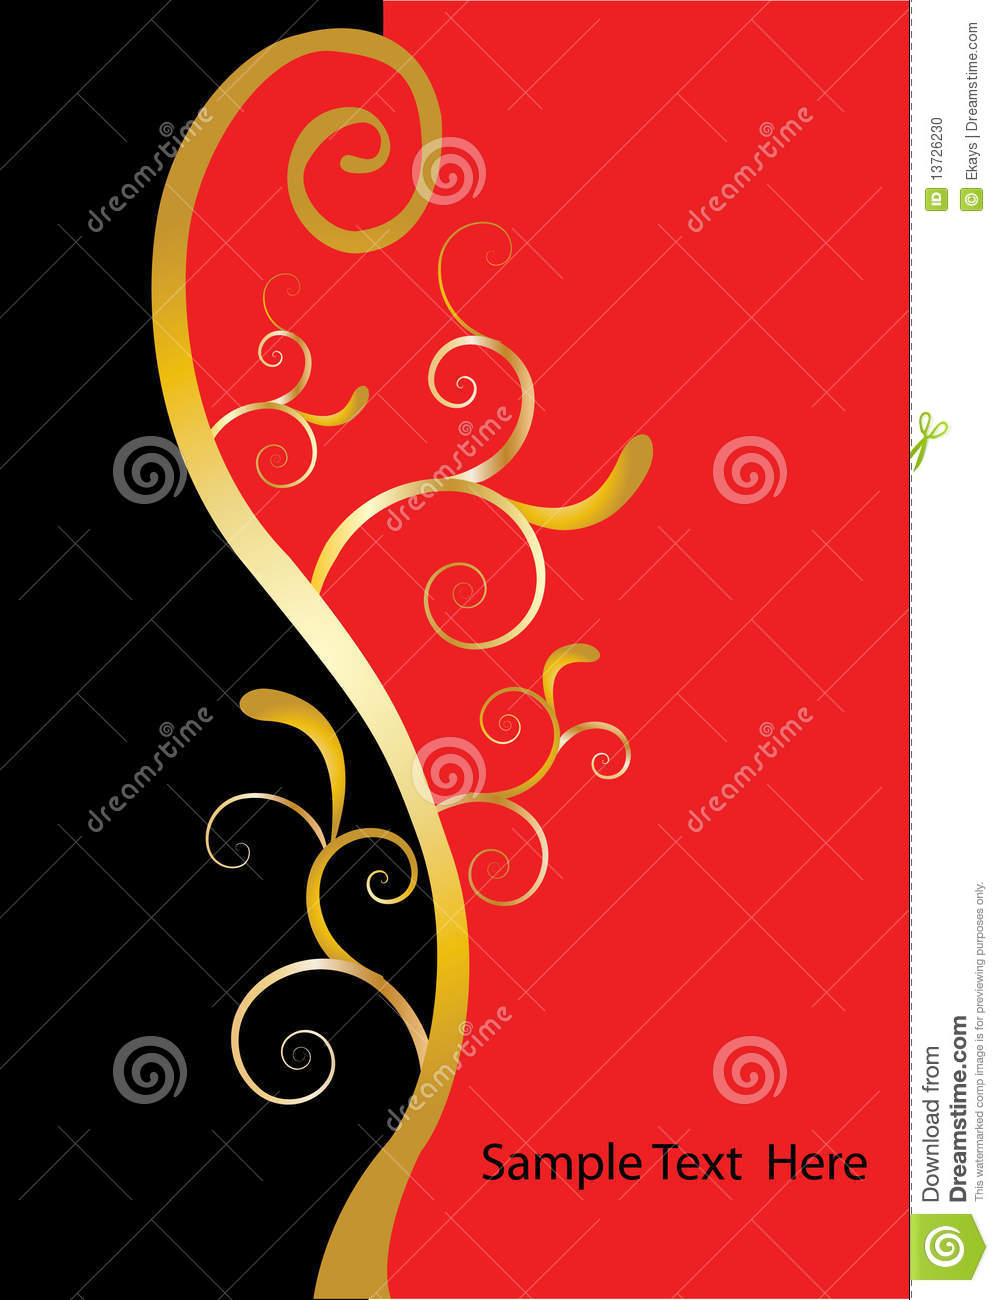 Swirls gold black red stock photo image 13726230 for Red with gold